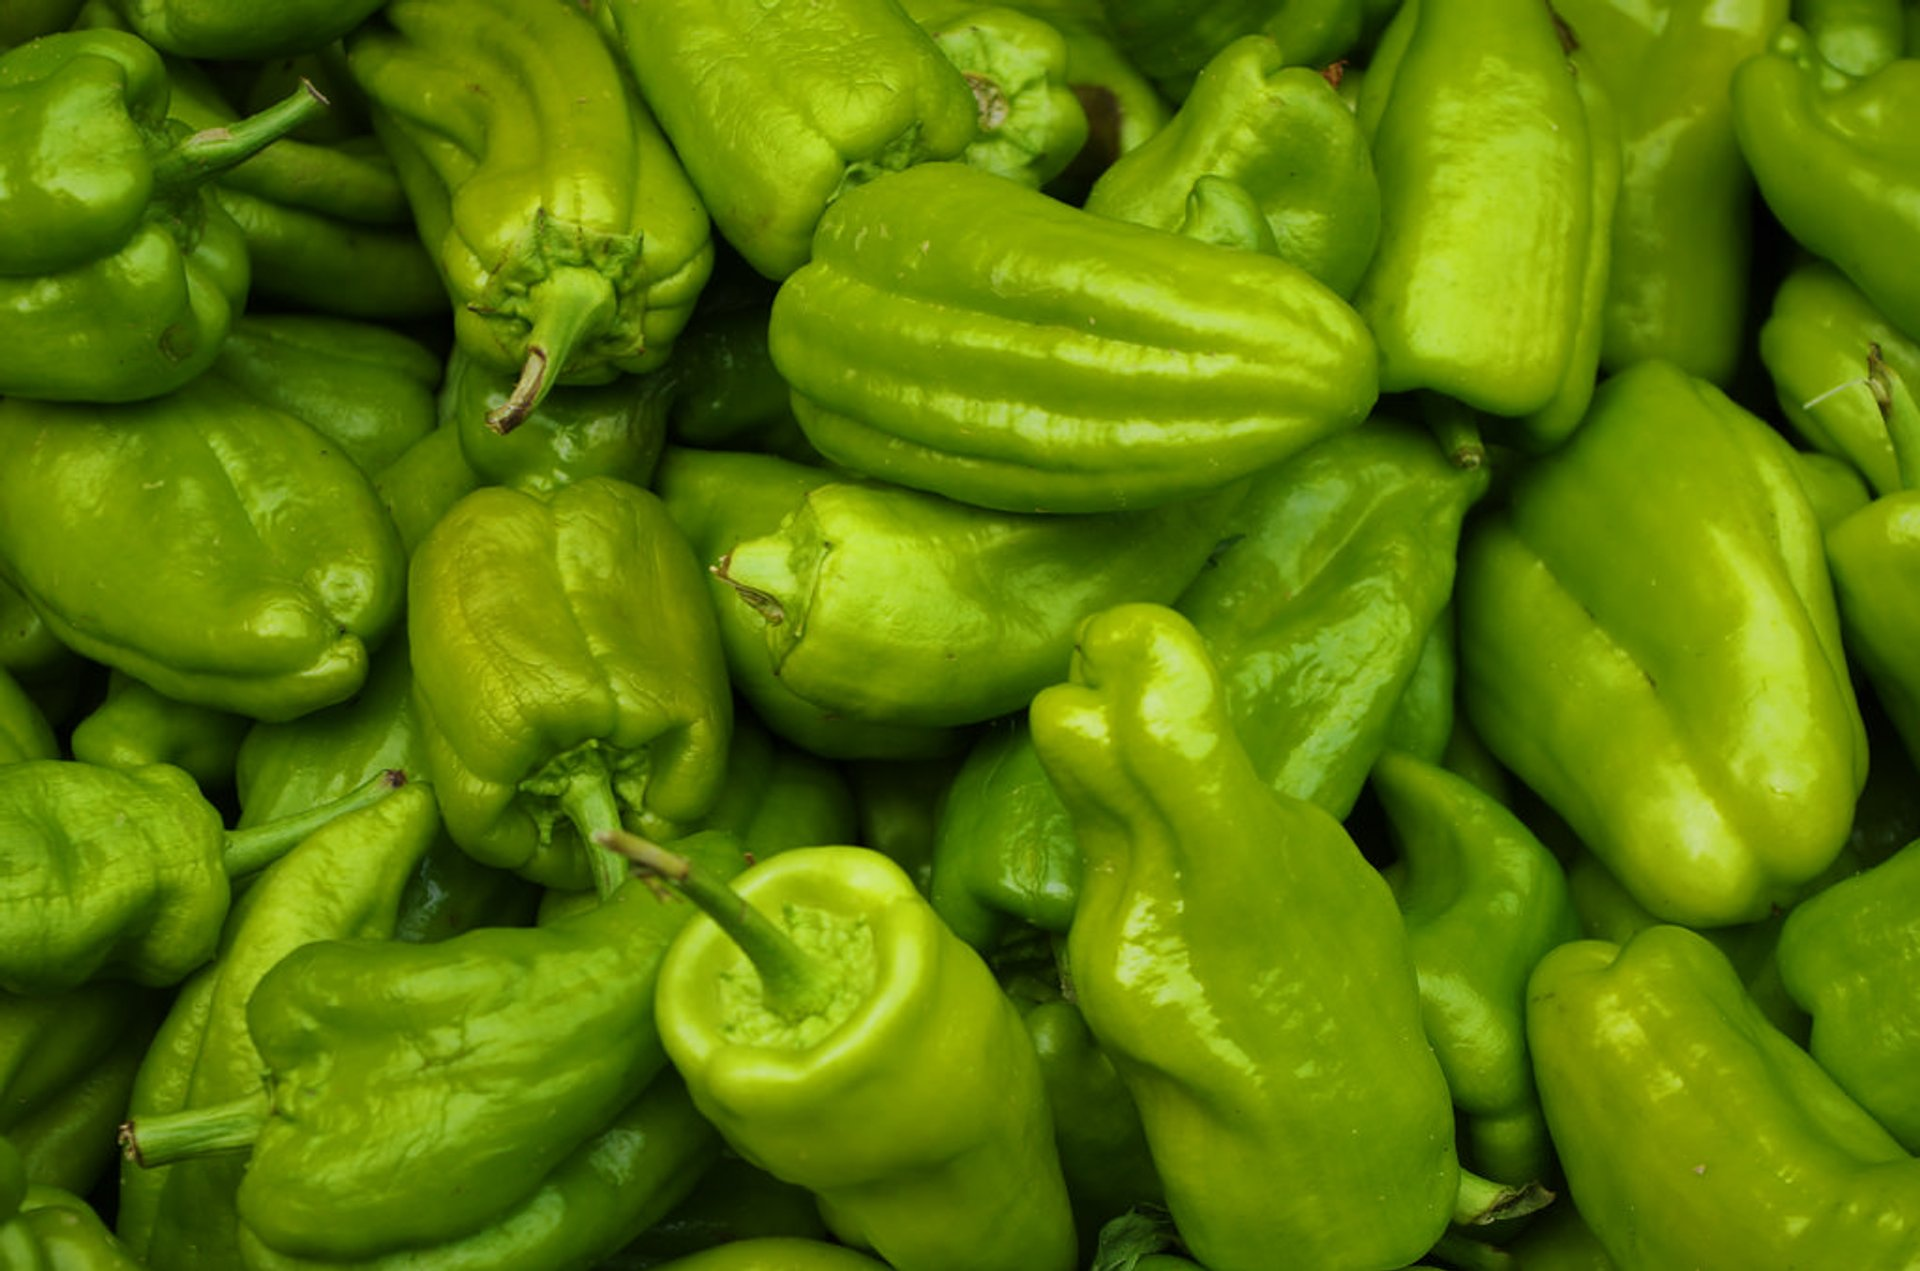 Padrón Peppers (Pimientos de Padrón) in Spain - Best Season 2019